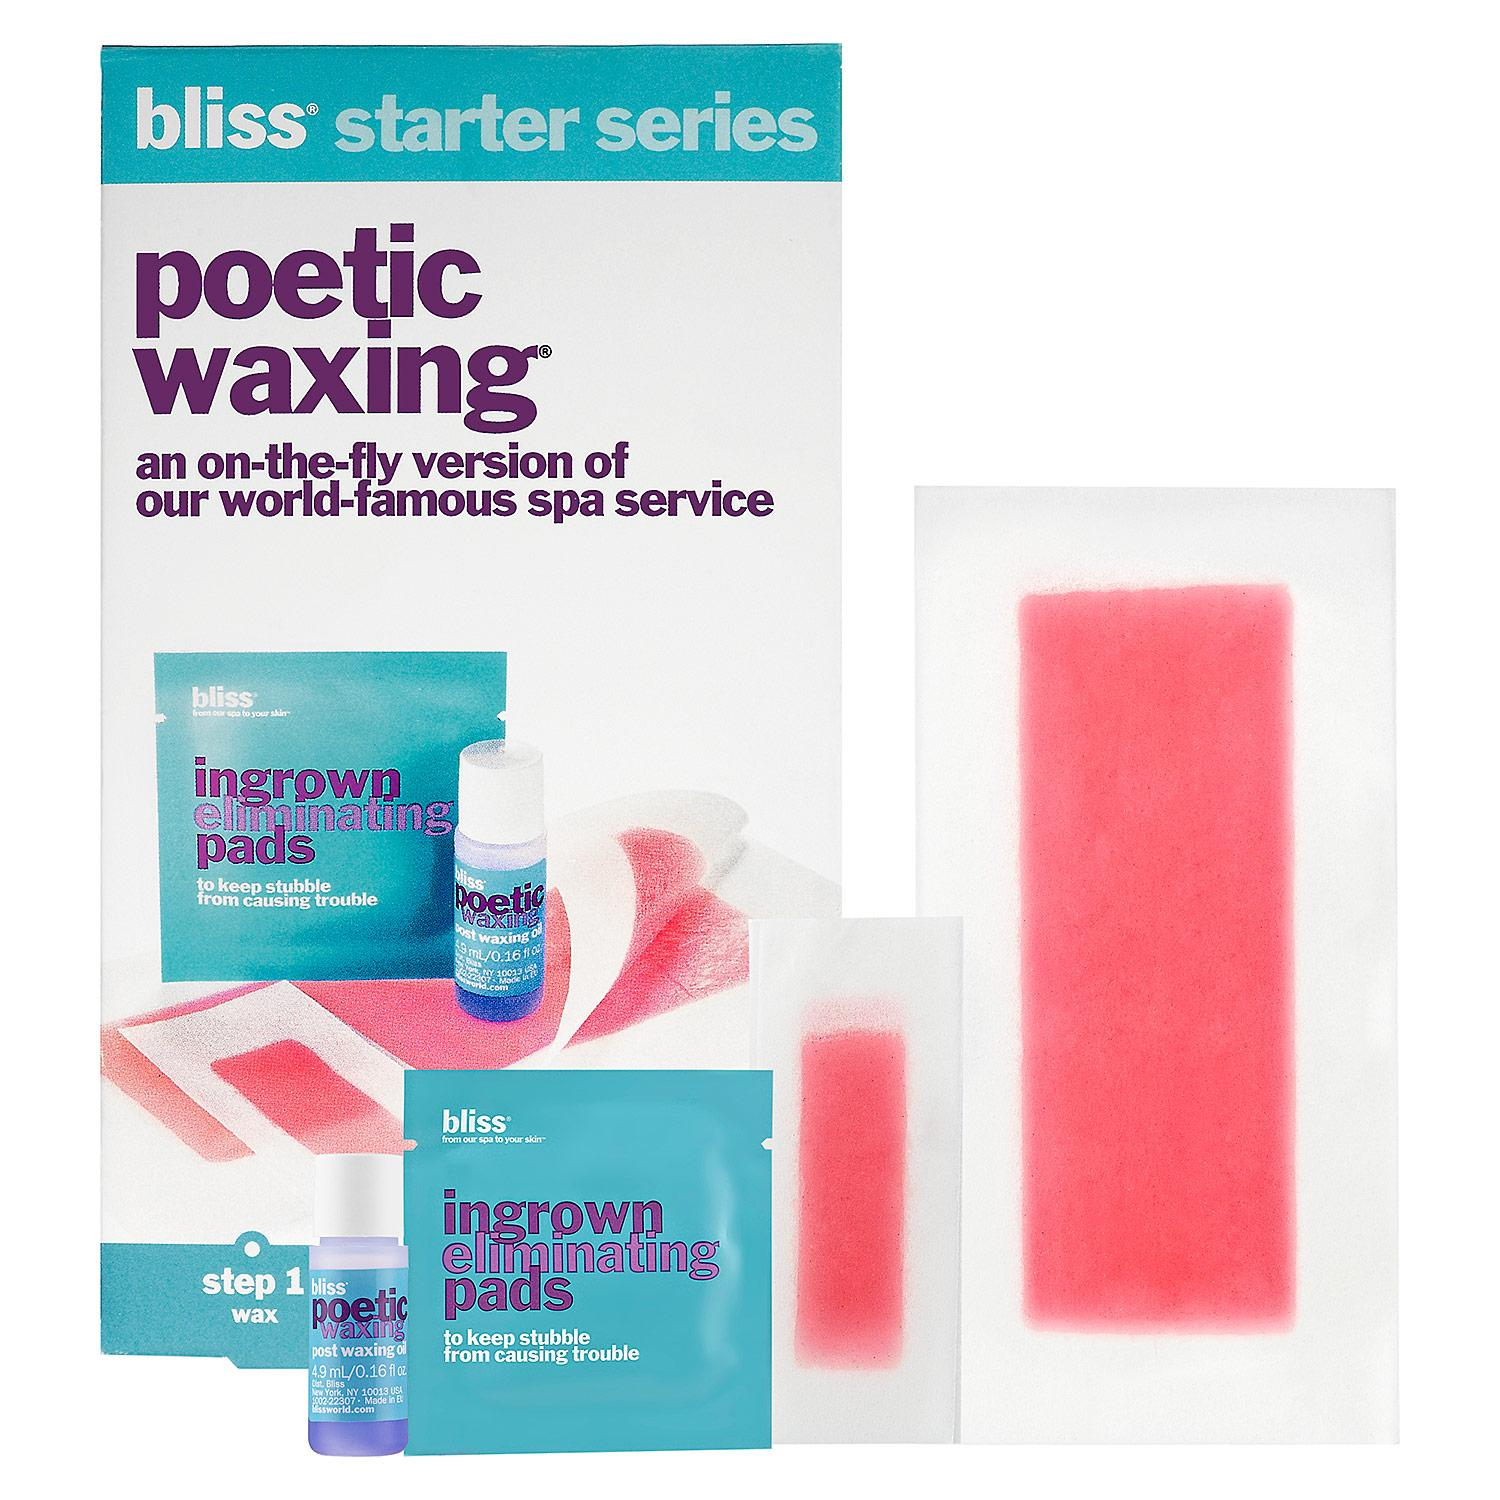 Poetic Waxing® Starter Series